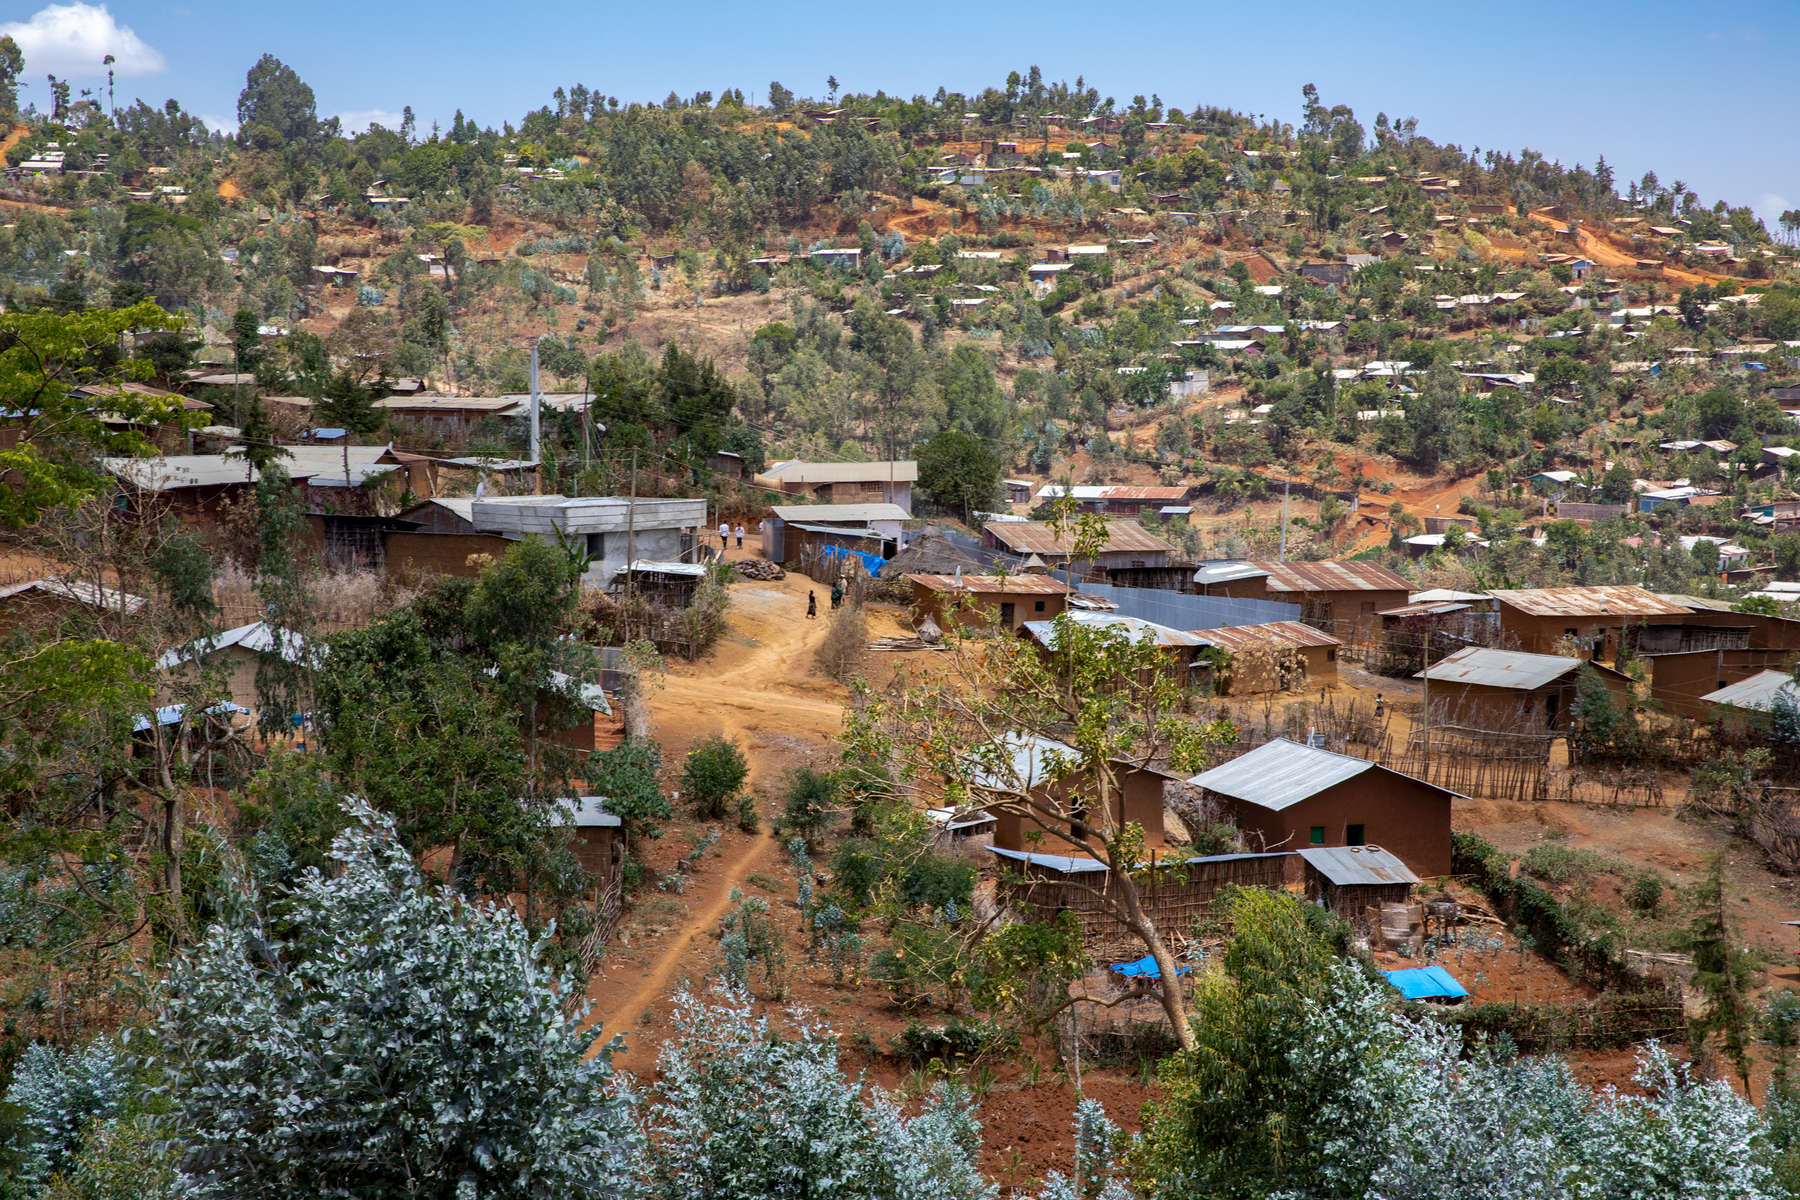 March 2019, Gidole, Ethiopia. The hillside town of Gidole. Through the PEG program, Mercy Corps is helping provide school materials for girls in Gidole and income-generating activities for their mothers.